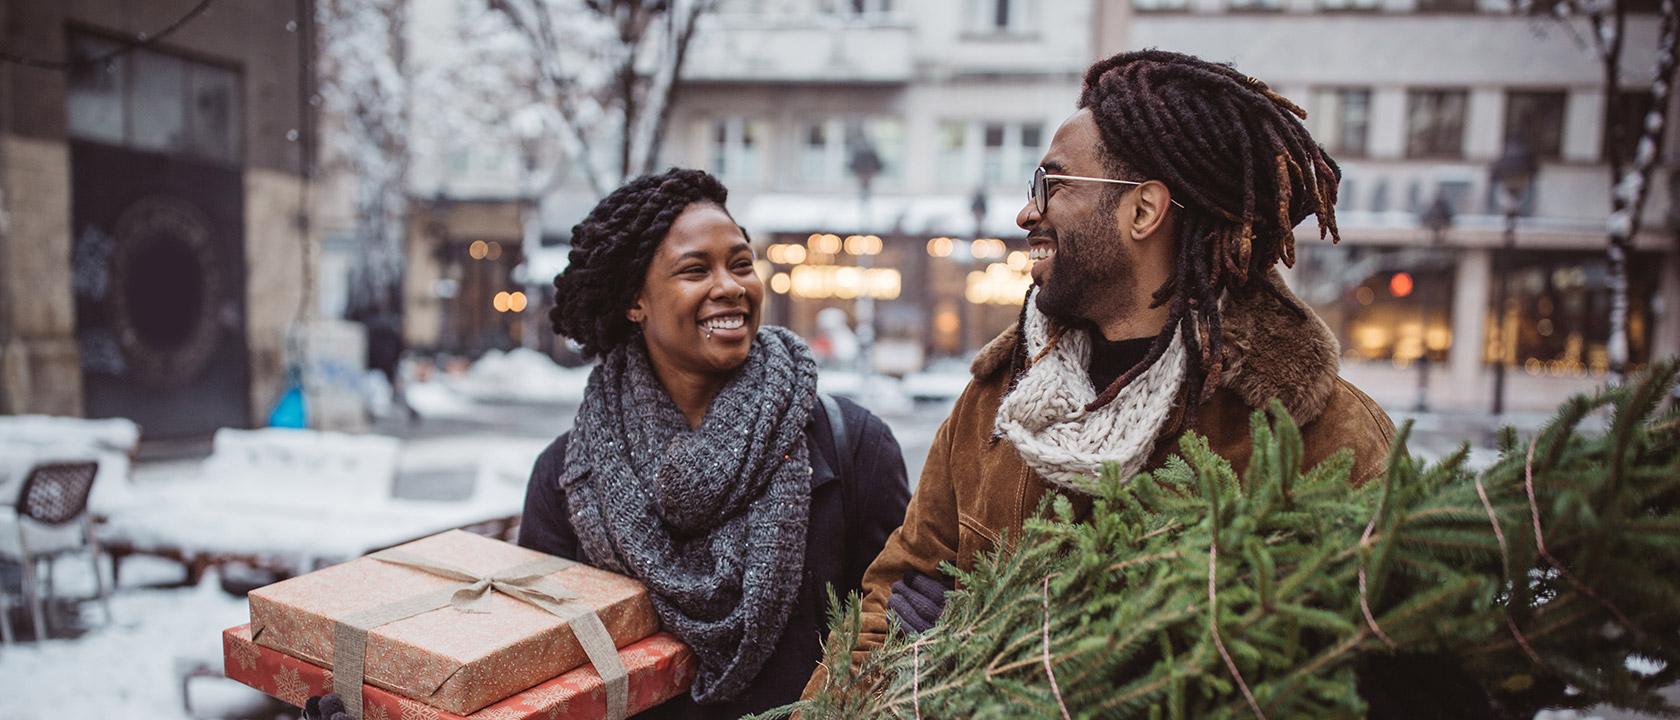 woman holding presents next to man holding tree outside in a downtown setting